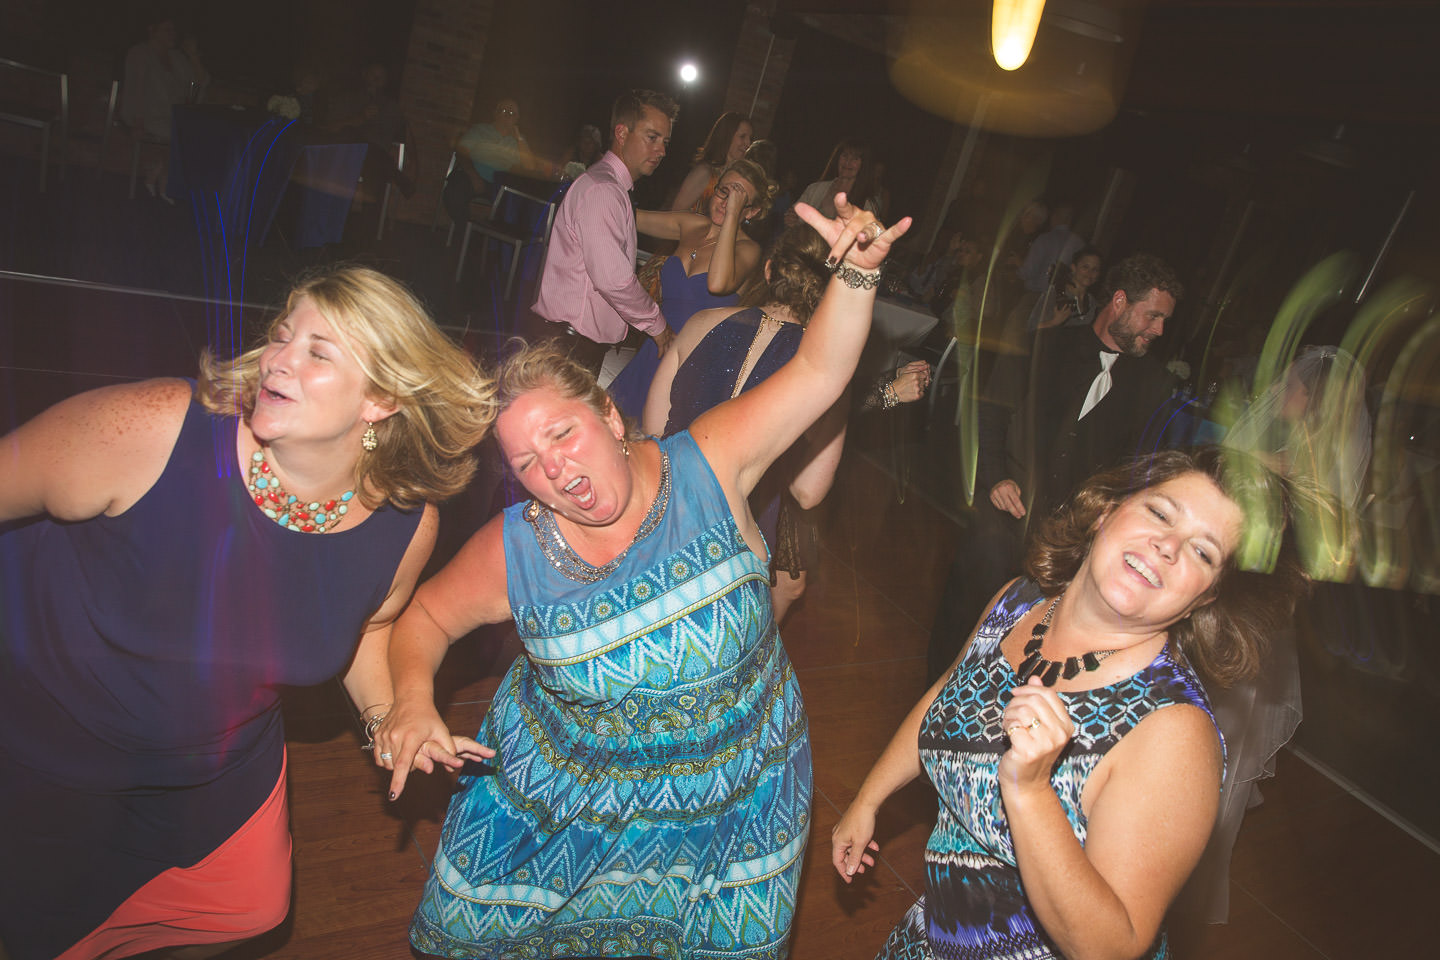 Mt-Brighton-Michigan-Wedding-Reception-Party-Hard